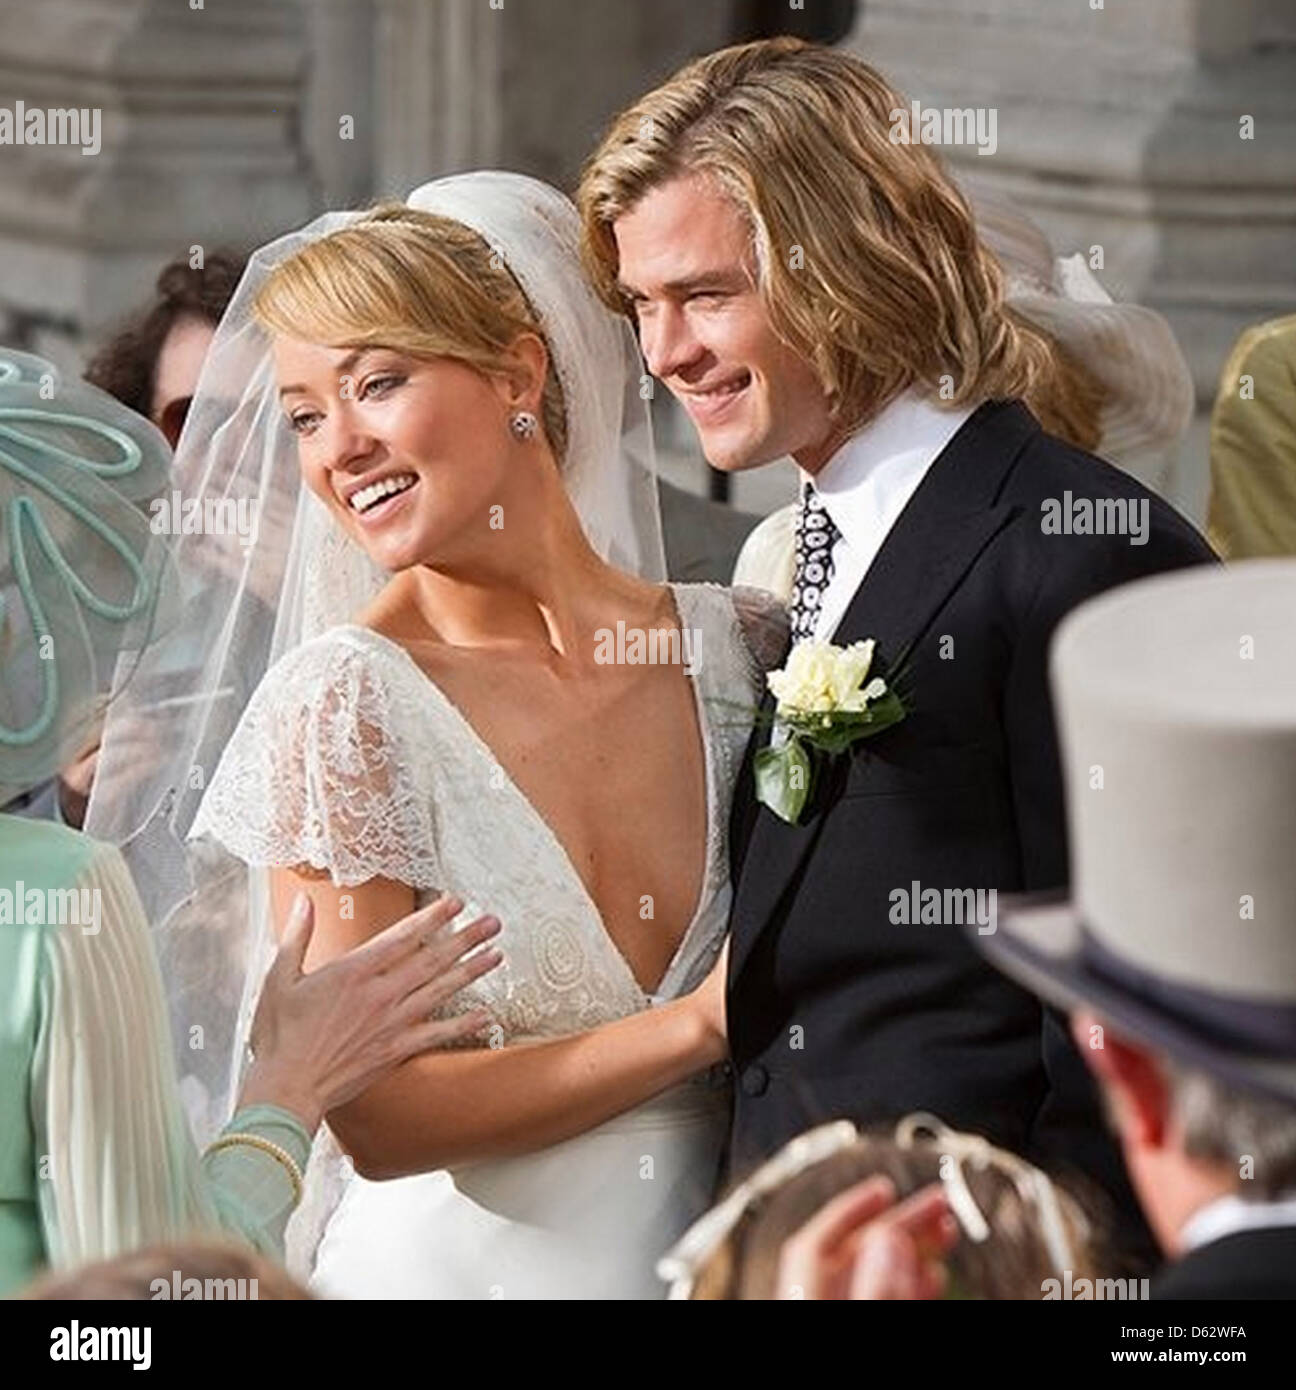 Rush 2013 universal pictures film with chris hemsworth as james rush 2013 universal pictures film with chris hemsworth as james hunt and olivia wilde as suzy miller voltagebd Gallery